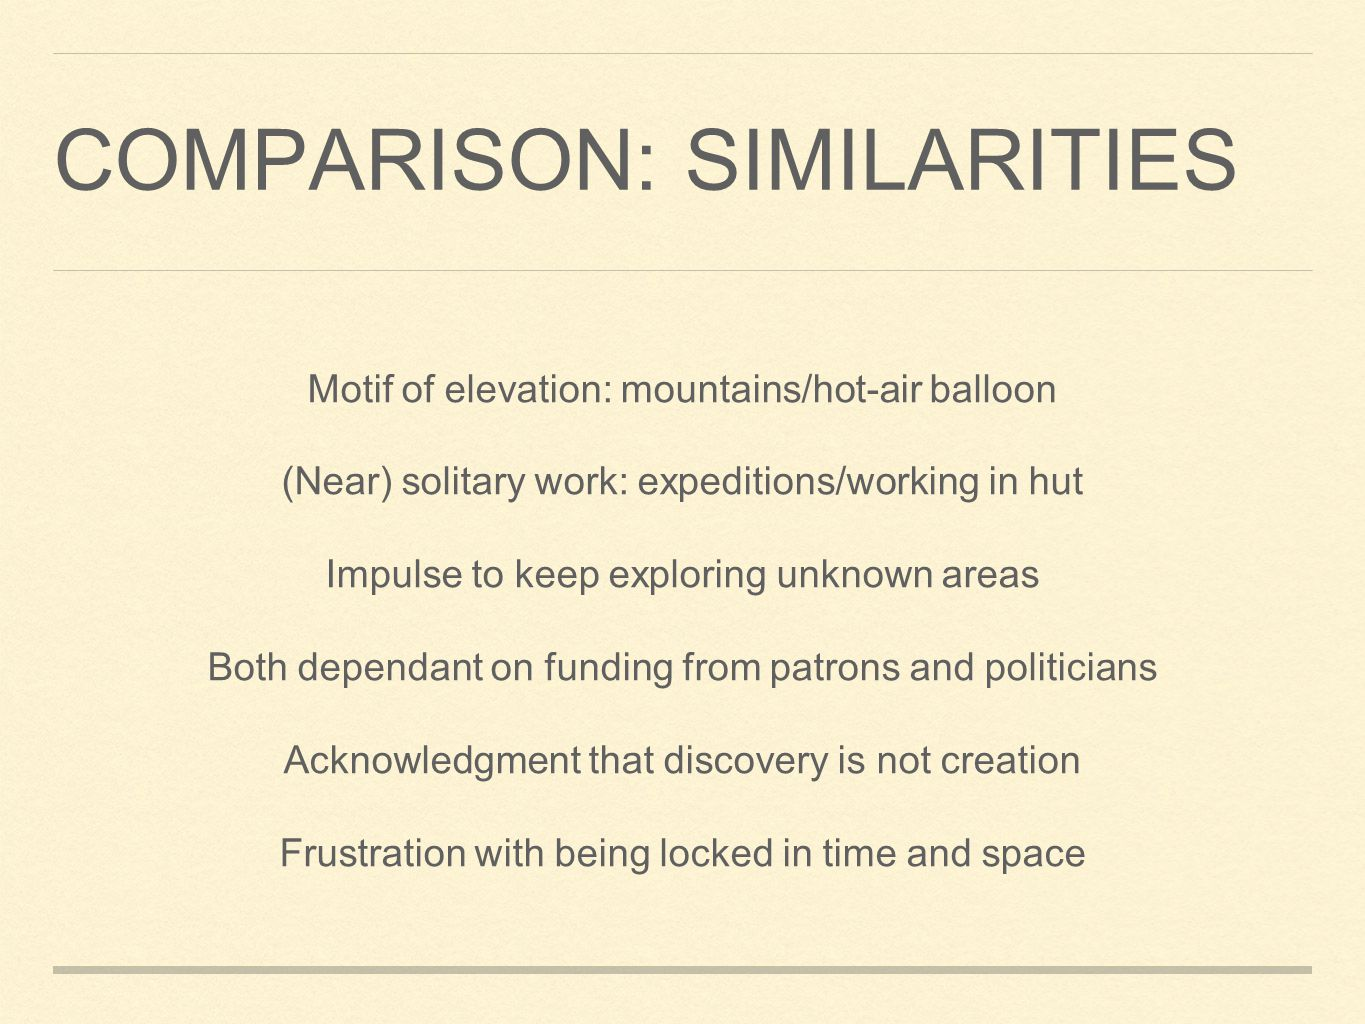 COMPARISON: SIMILARITIES Motif of elevation: mountains/hot-air balloon (Near) solitary work: expeditions/working in hut Impulse to keep exploring unknown areas Both dependant on funding from patrons and politicians Acknowledgment that discovery is not creation Frustration with being locked in time and space